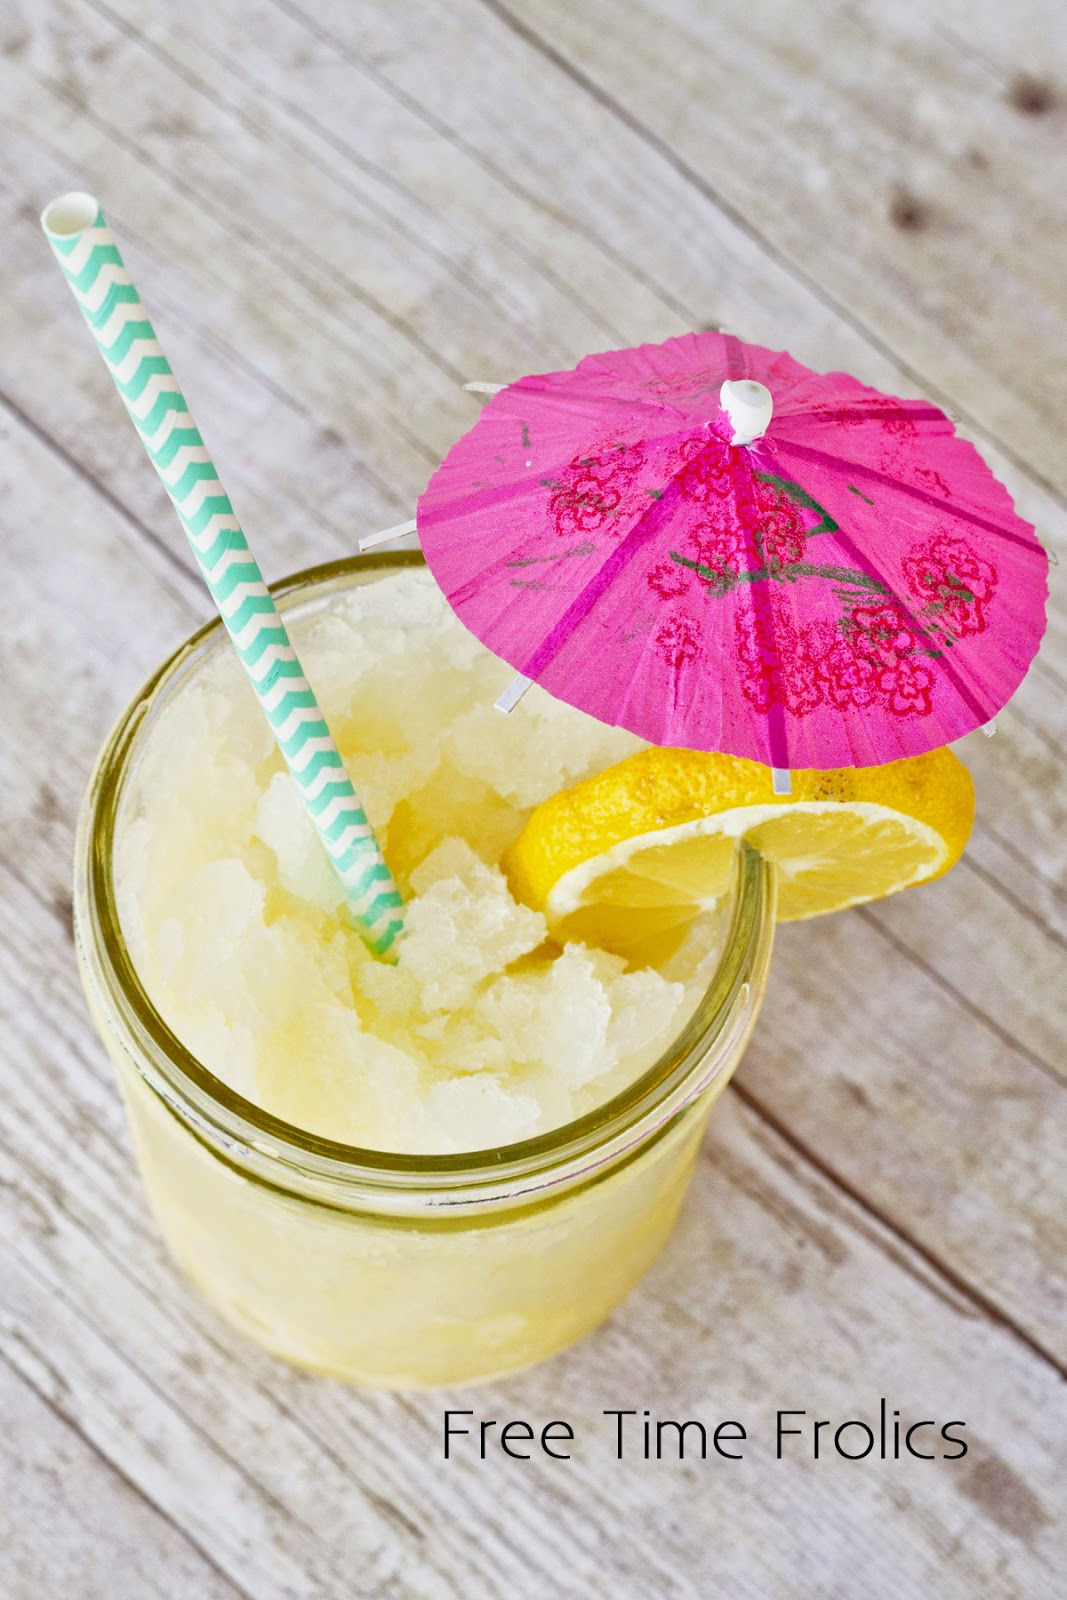 citrus slush recipe for summer parties ww.freetimefrolics.com